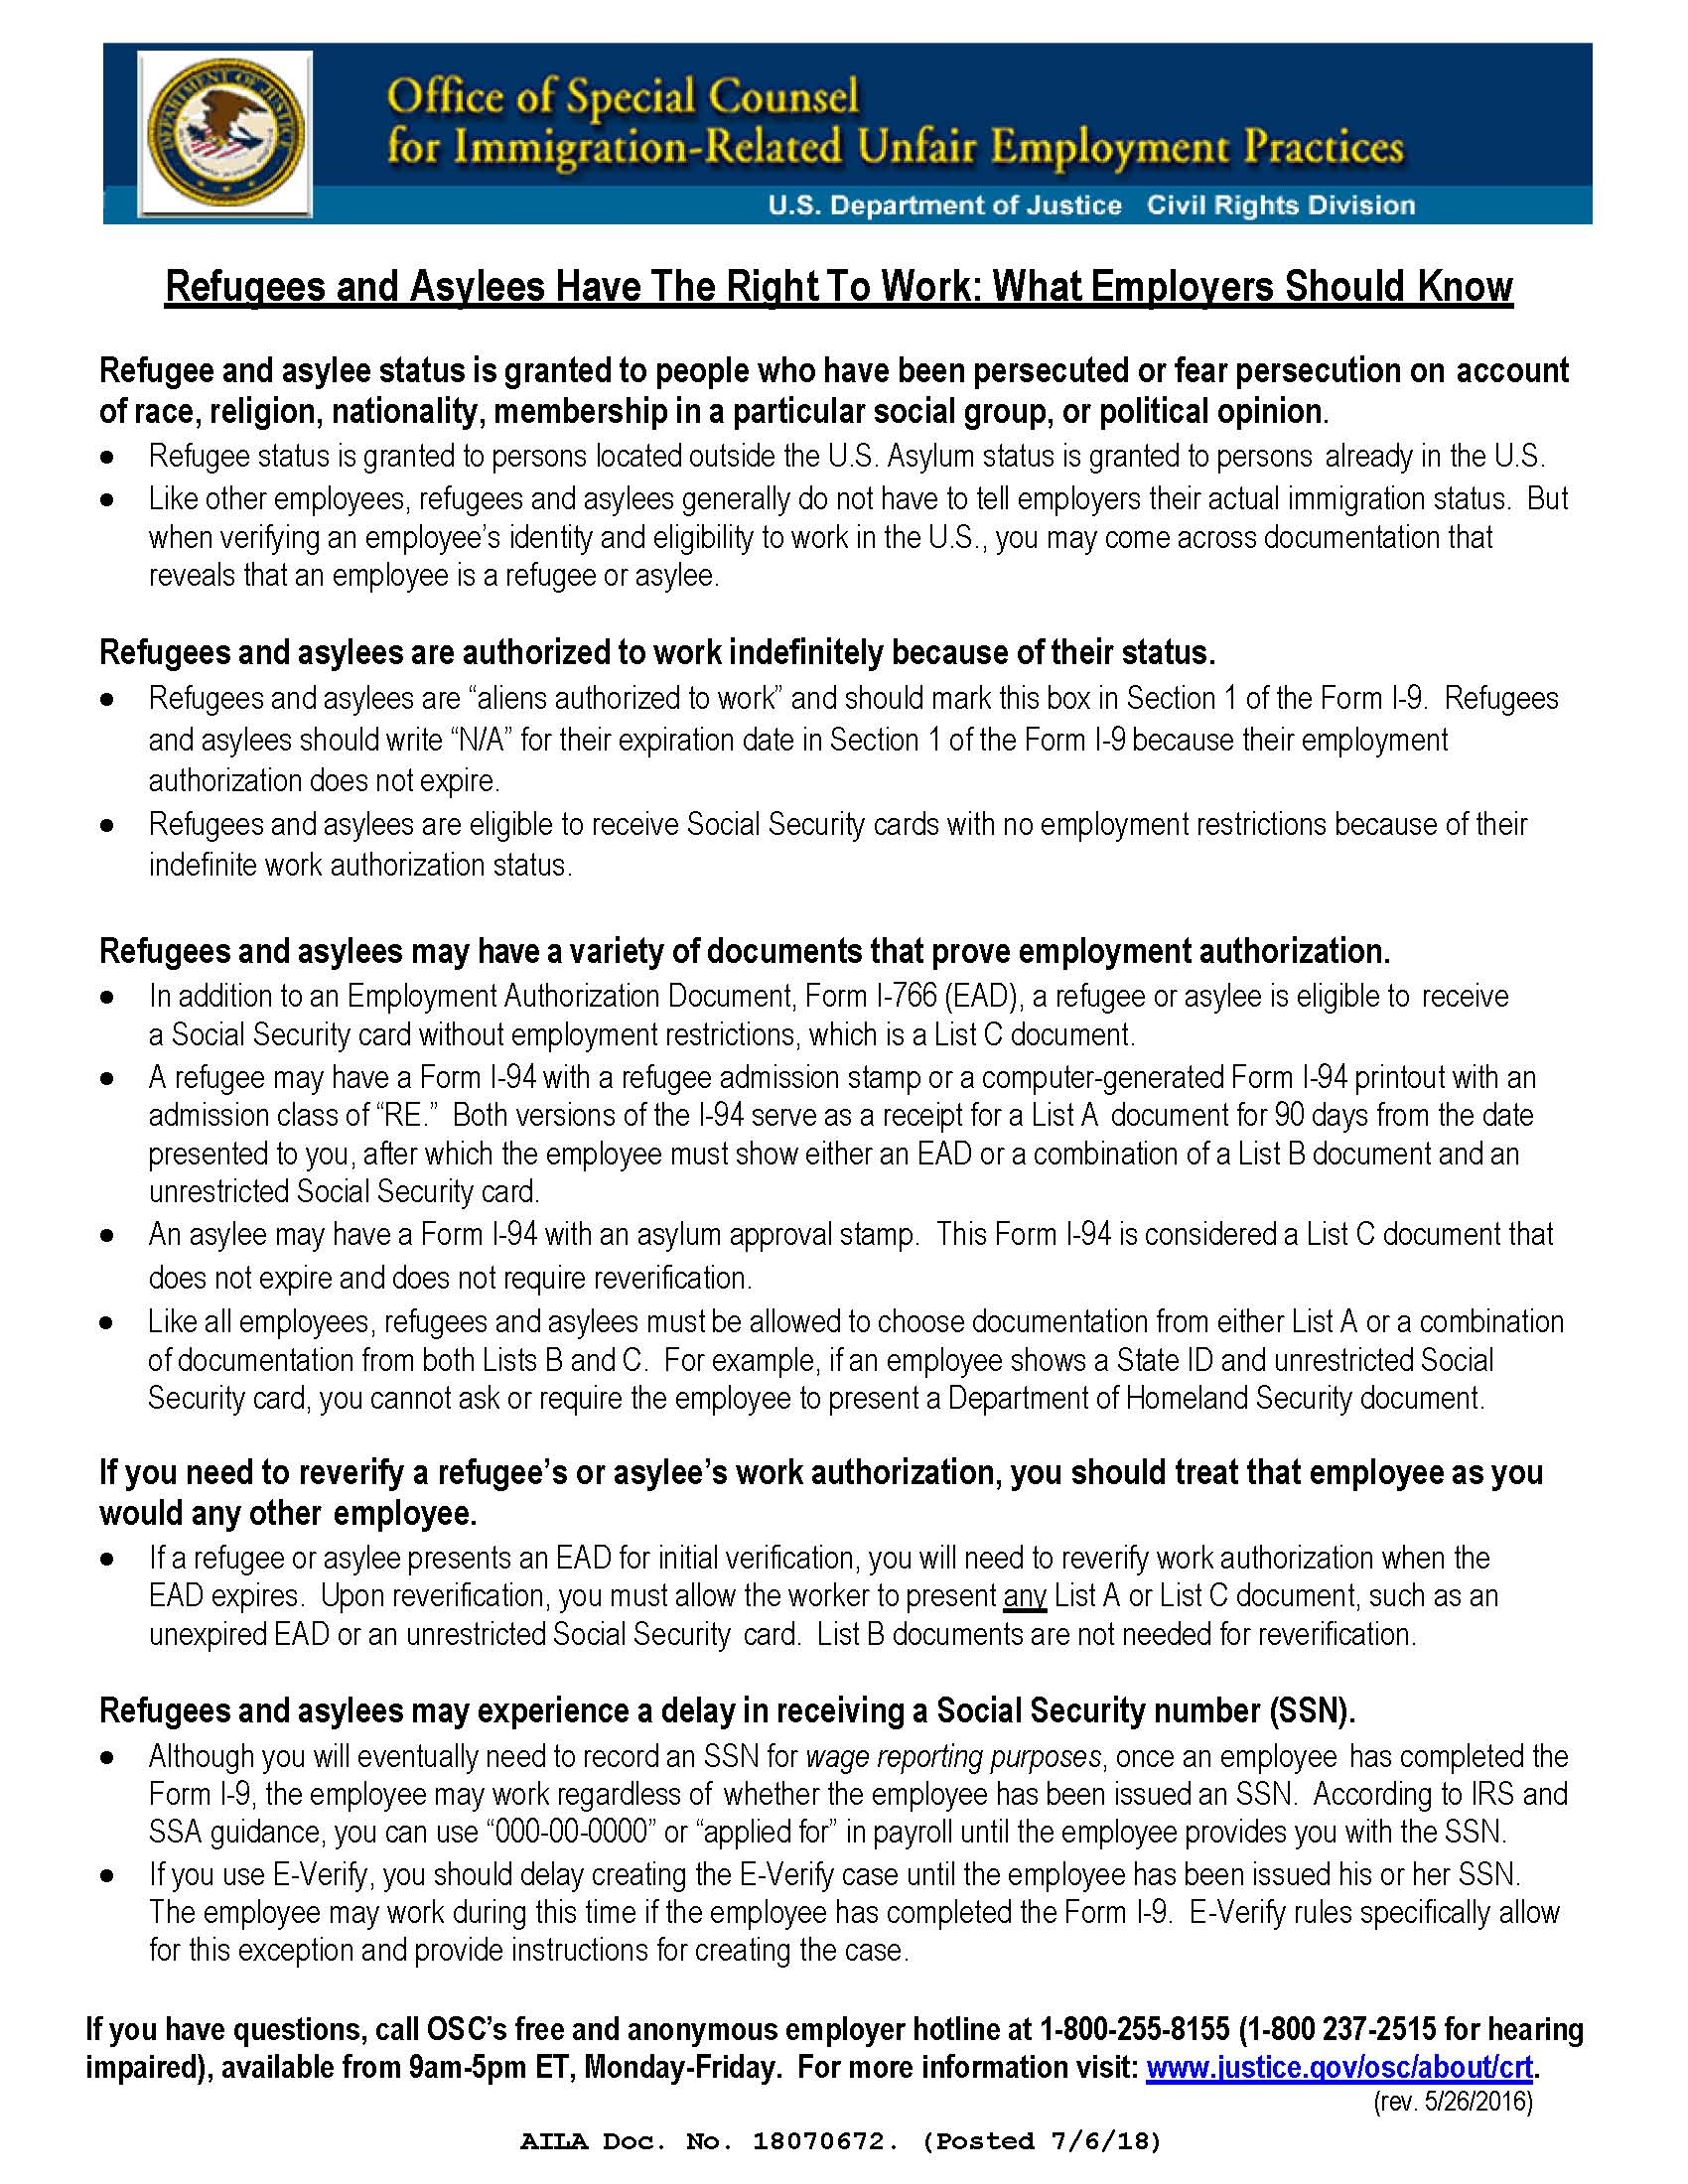 OSC Issues Flyer for Employers of Refugees and Asylees on Working in the U.S.